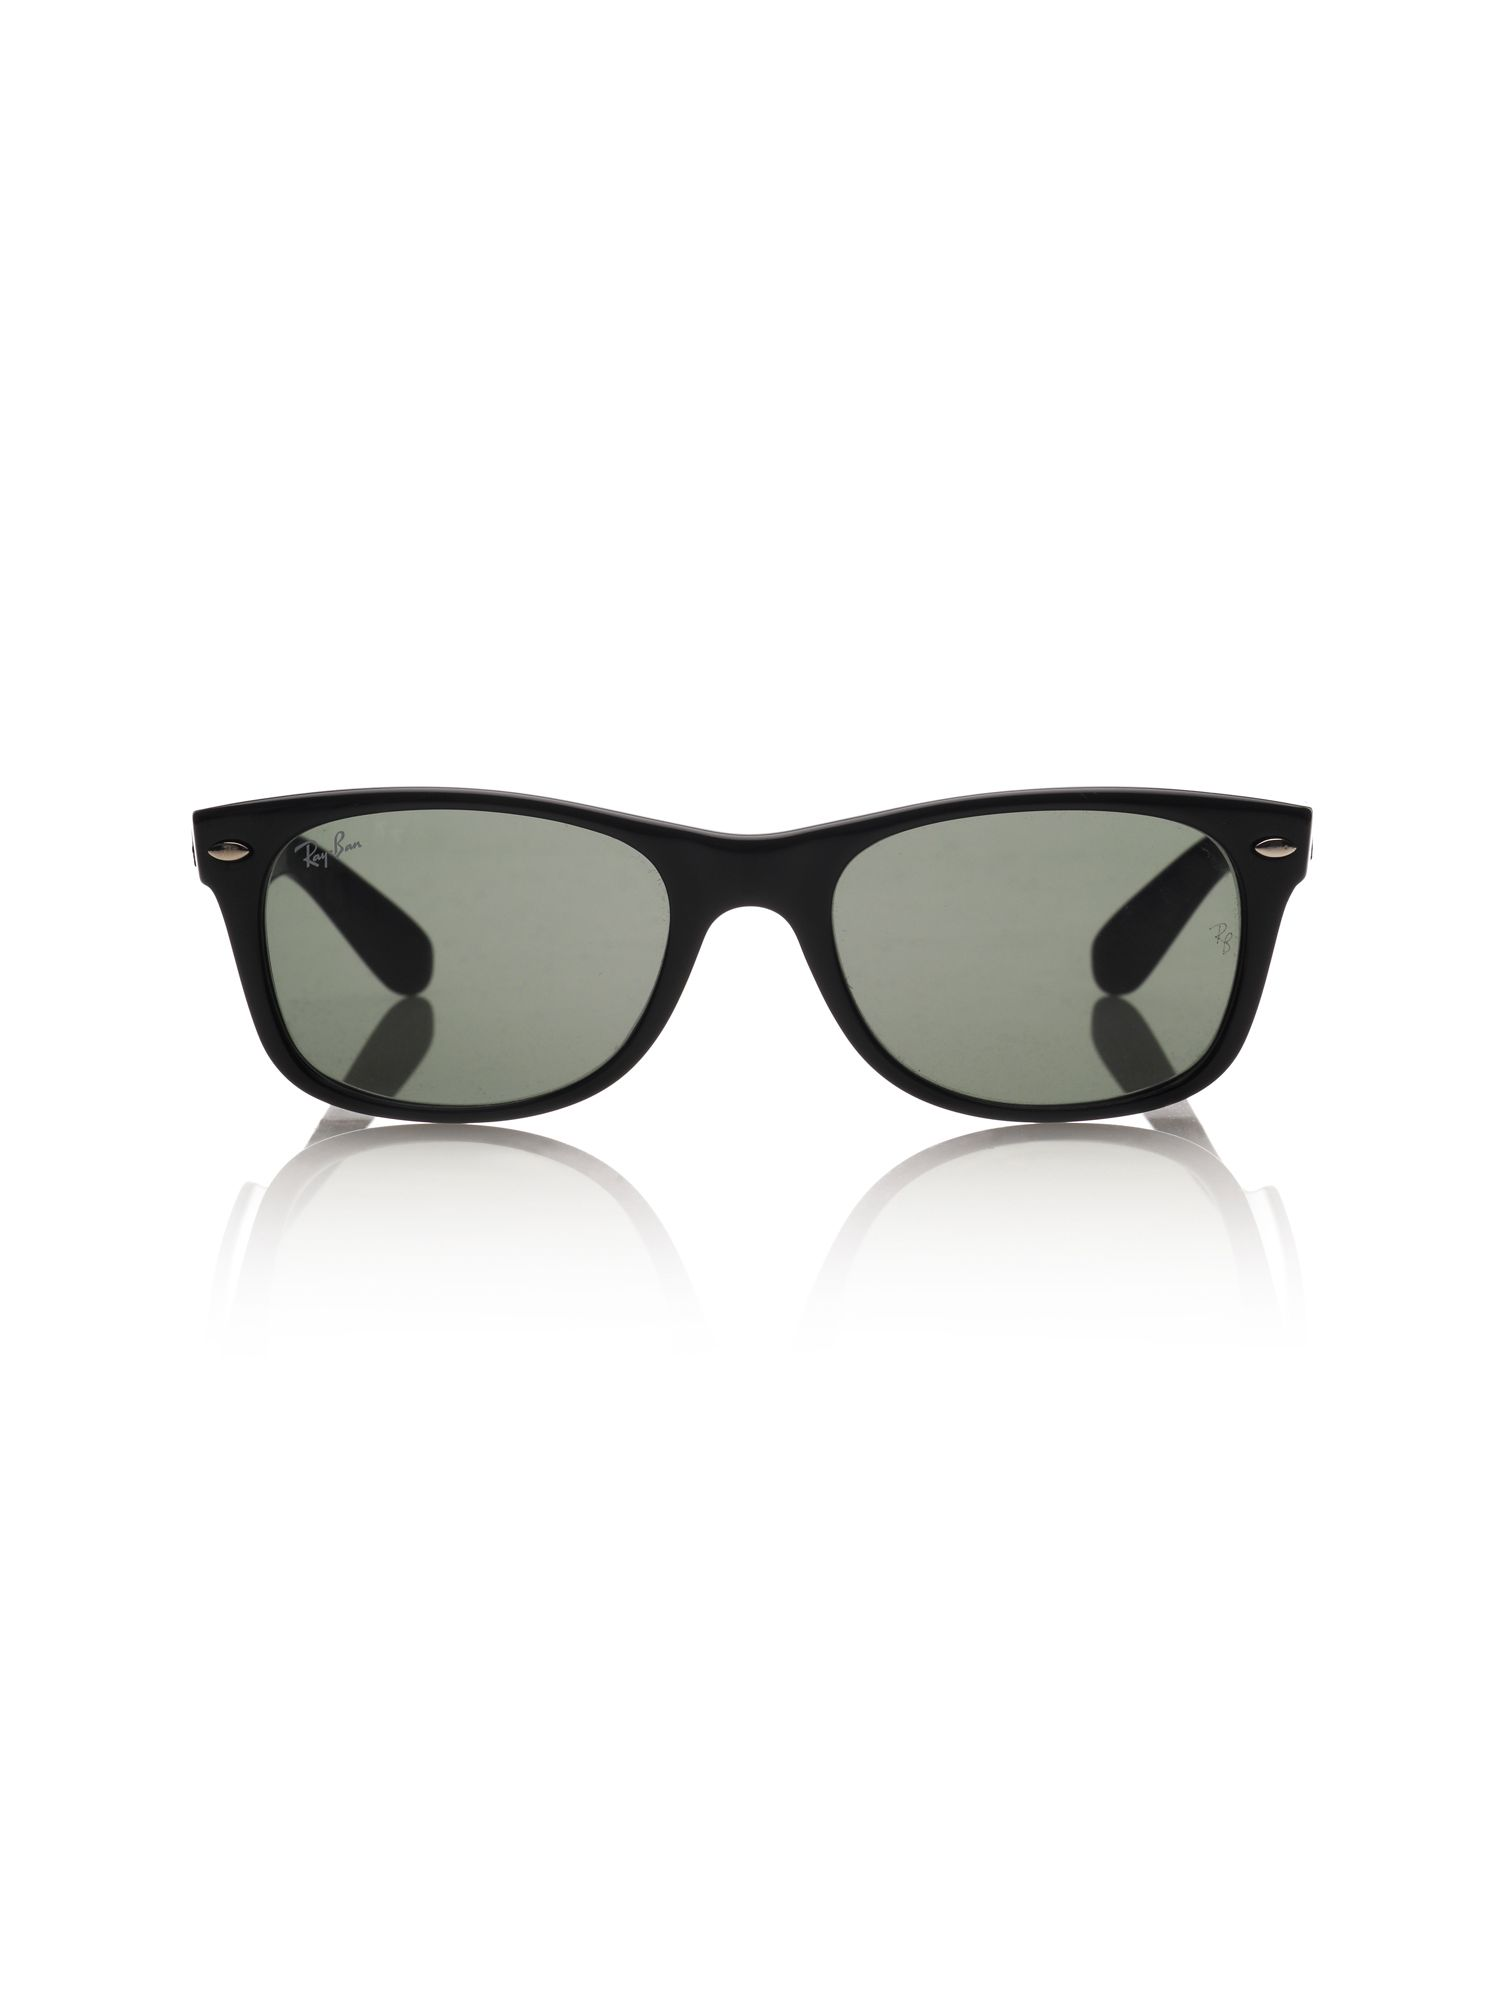 Unisex RB2132 New Wayfarer Sunglasses